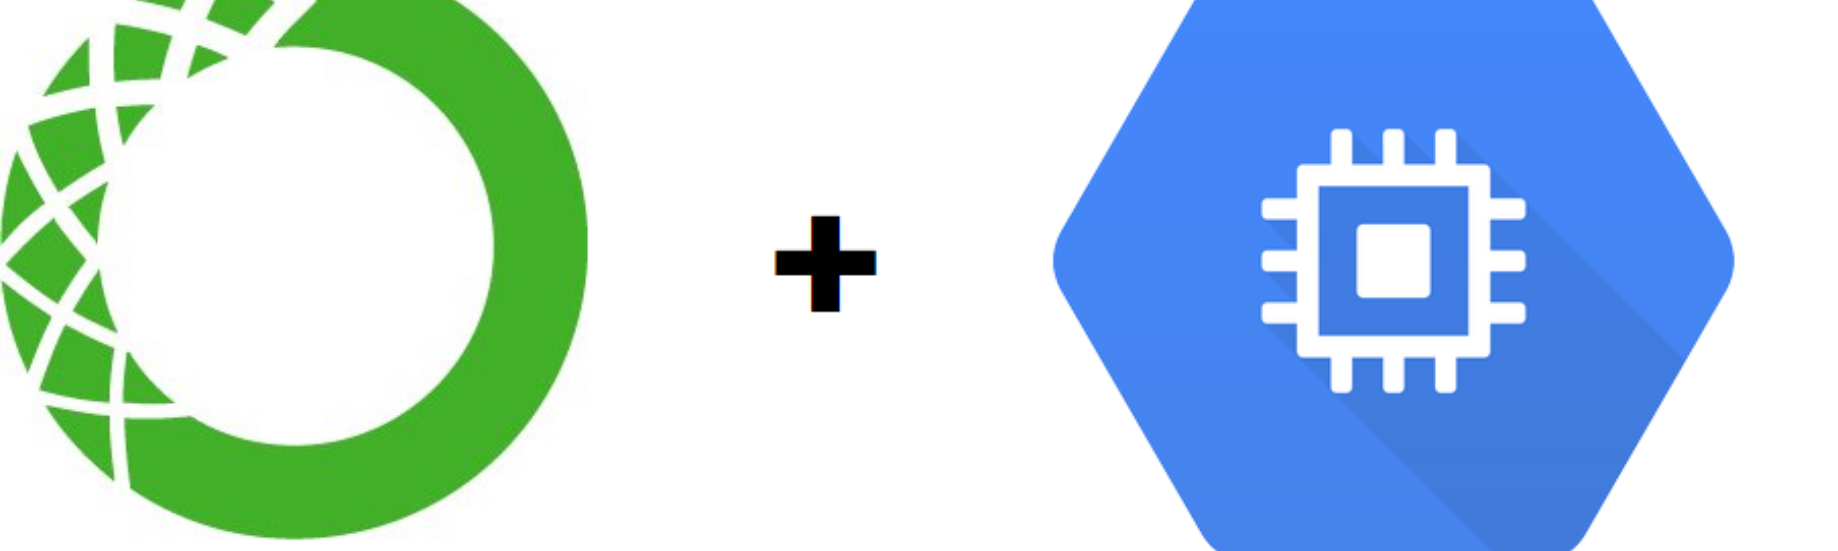 How to set up Anaconda under Google Cloud VM and transfer files on